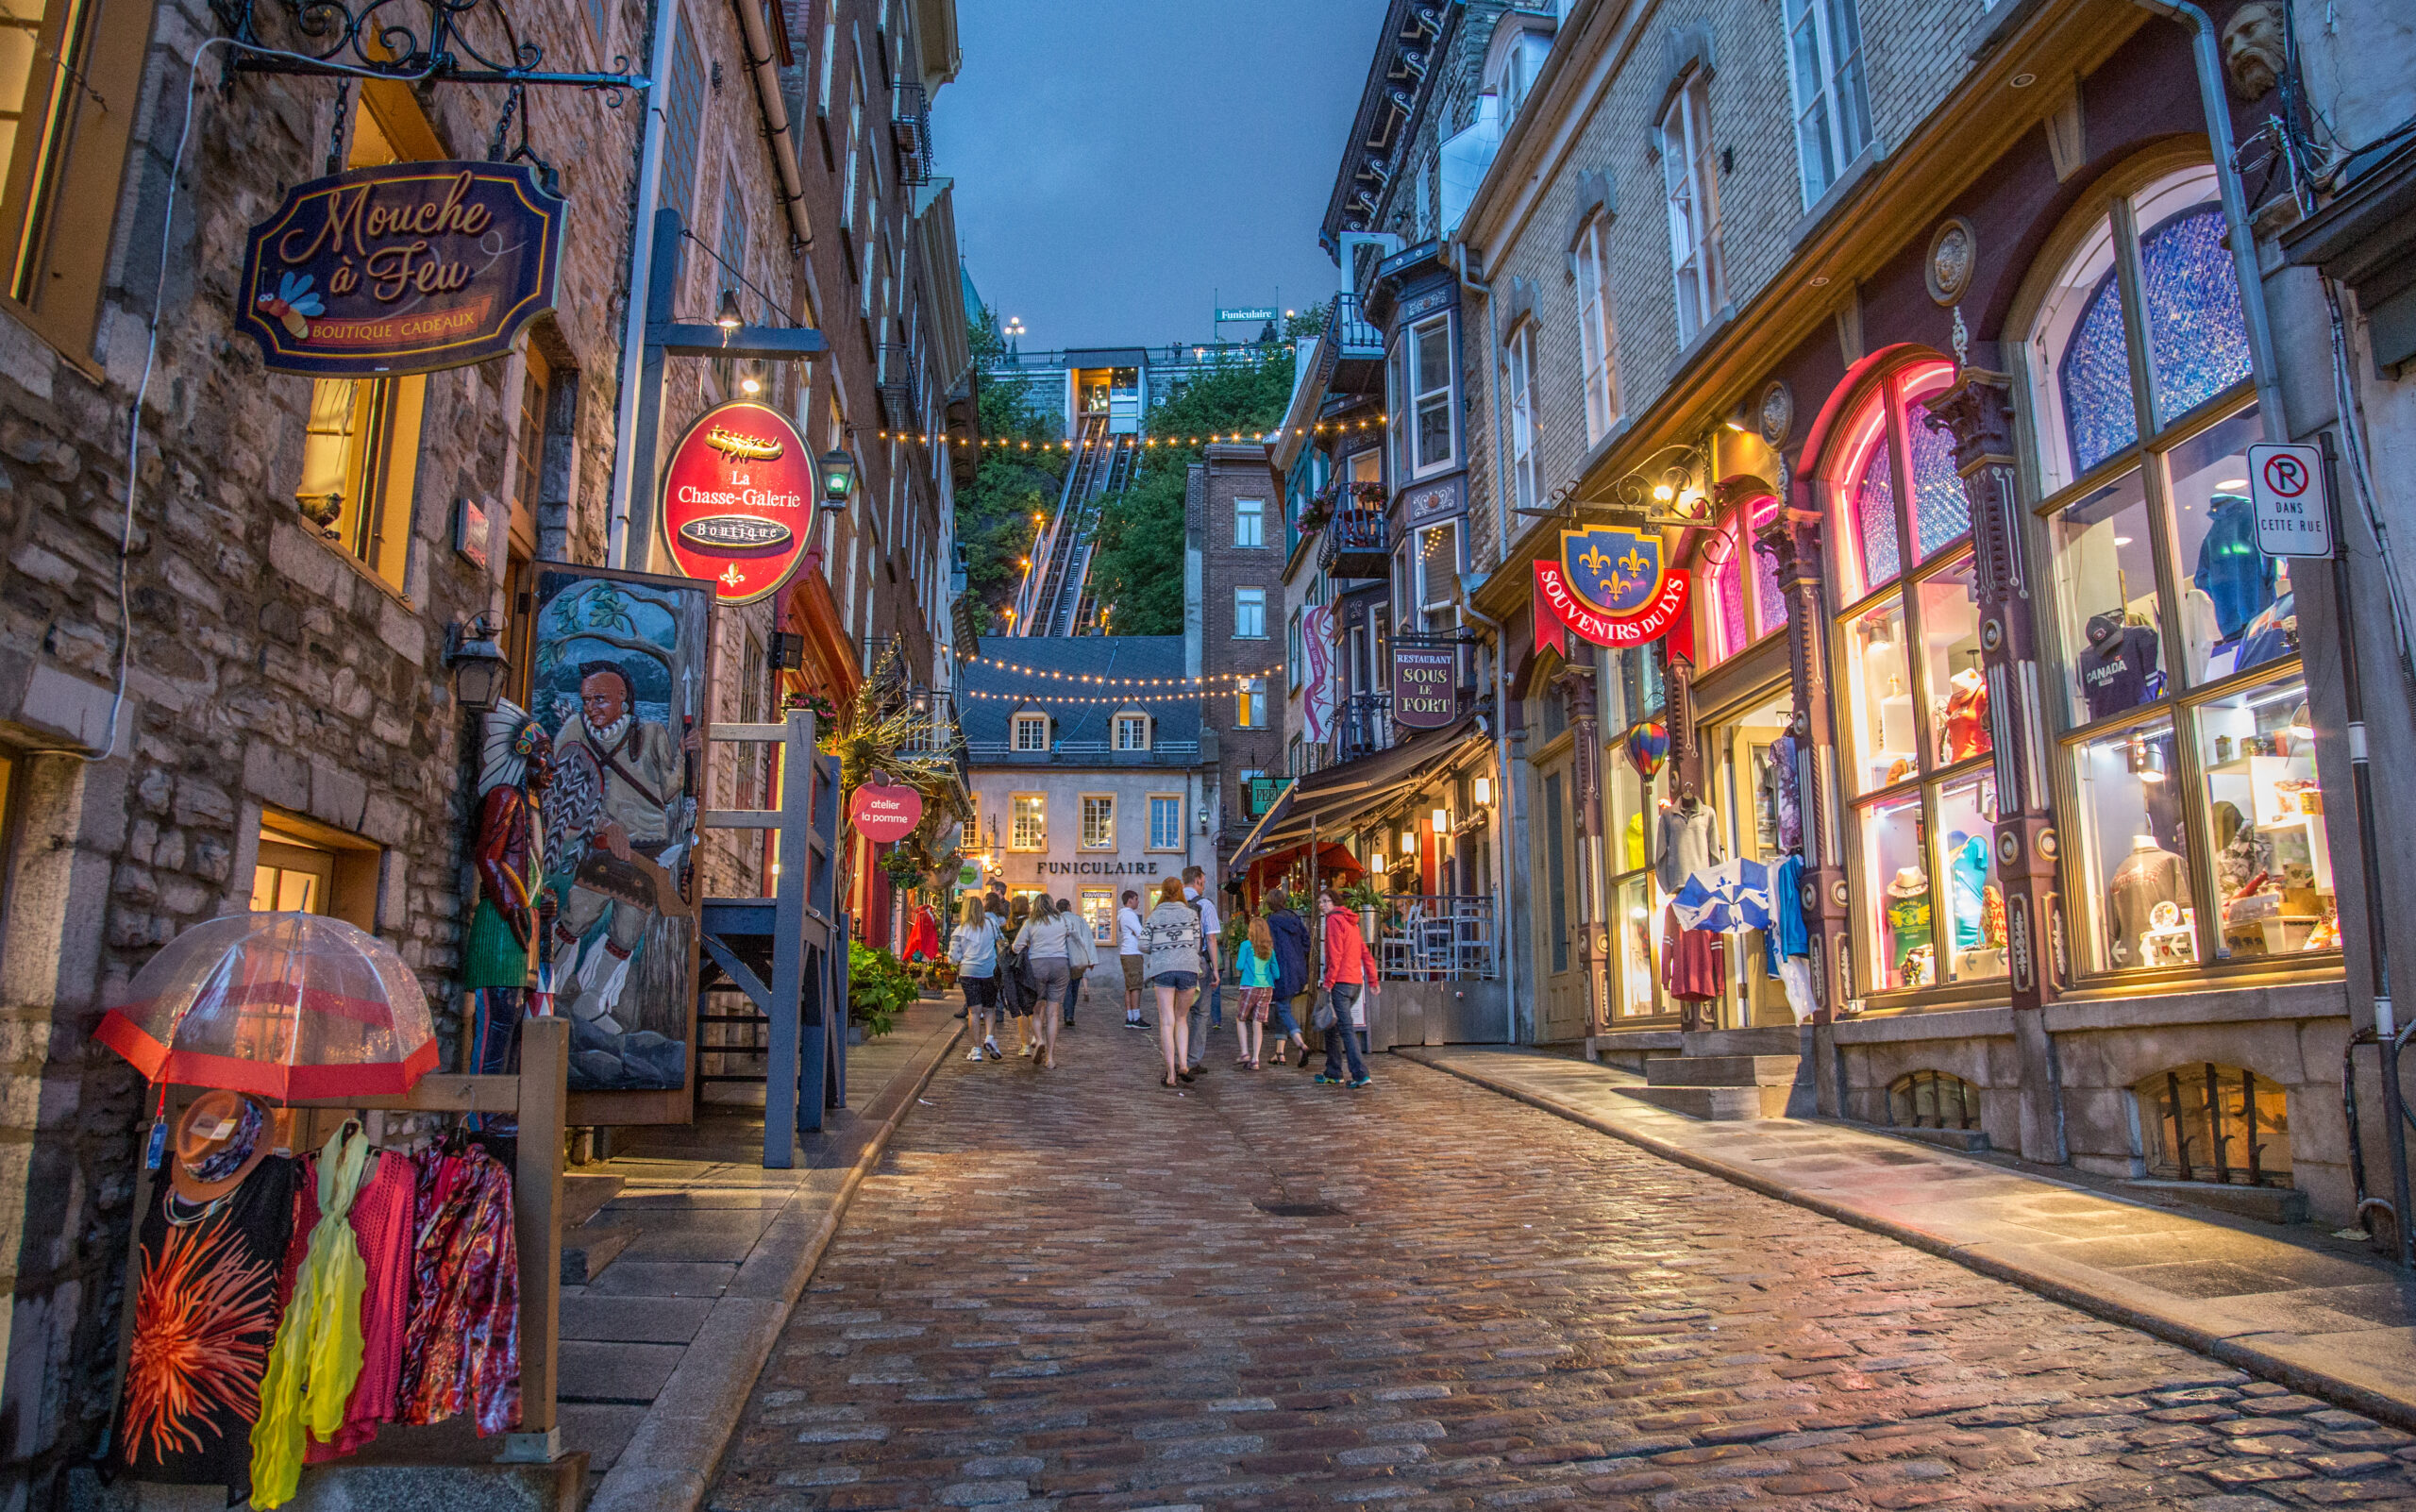 Rue Street, Quebec City